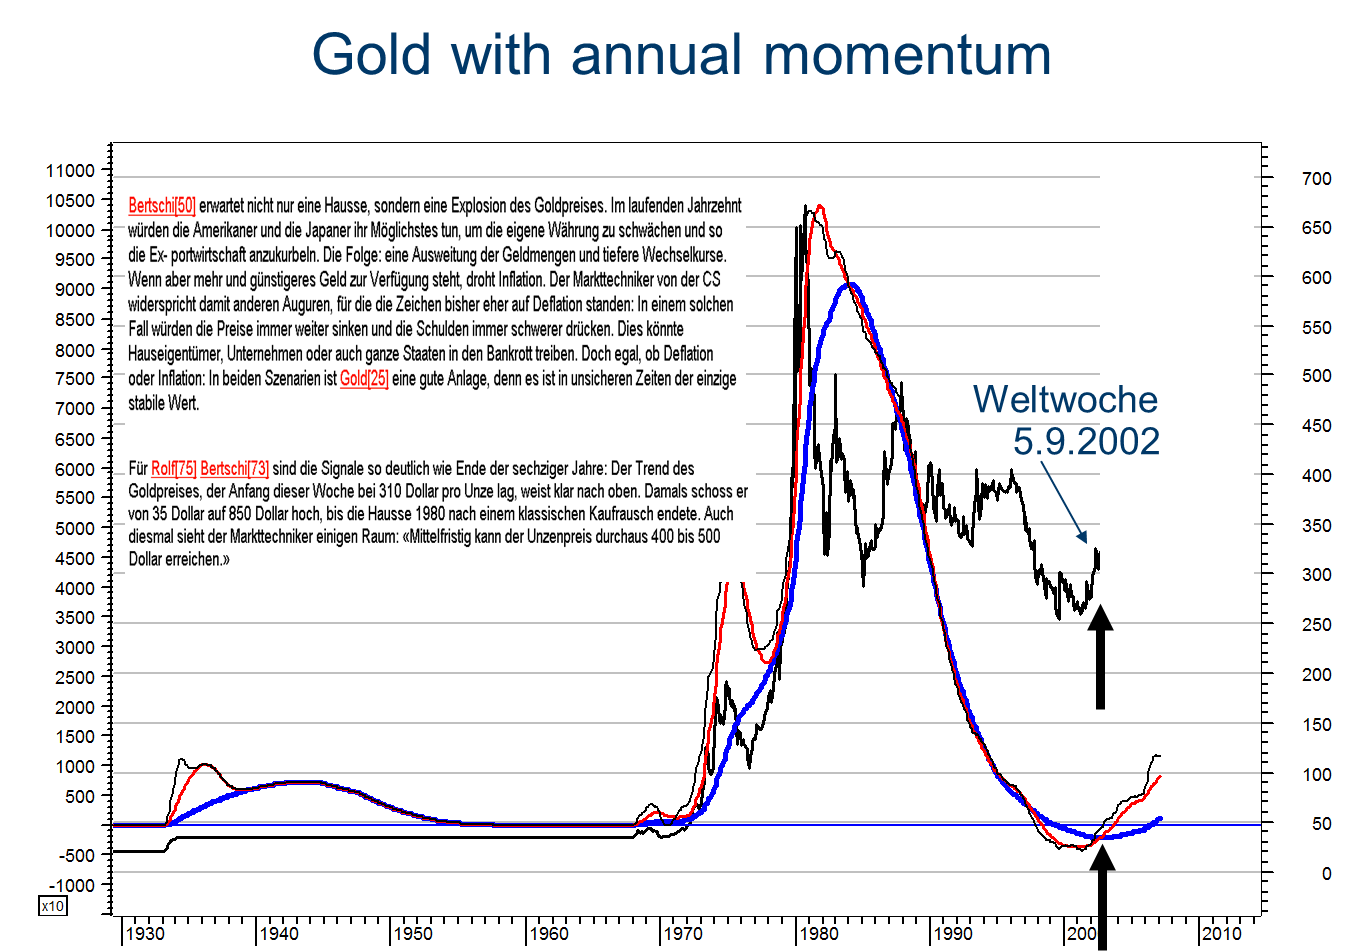 "In the Swiss Magazine ""Weltwoche"" I projected that Gold has entered a new secular uptrend. This uptrend would push Gold higher of the coming decade. During this uptrend Gold would reach Levels above US$ 500 and possibly new all-time highs. Following my forecast, Gold surged to 1900 in August 2011. In other words, the SECULAR uptrend, which I identified based on my Momentum Indicators, Gold rose by over 500%.   The chart below is from a series of presentations, which I gave in early 2012.  I did identify the pattern in Gold as the long-term TOP, which should be folllowed by a long-term bear market. As you are well aware of did the Gold price enter a bear market in 2013."